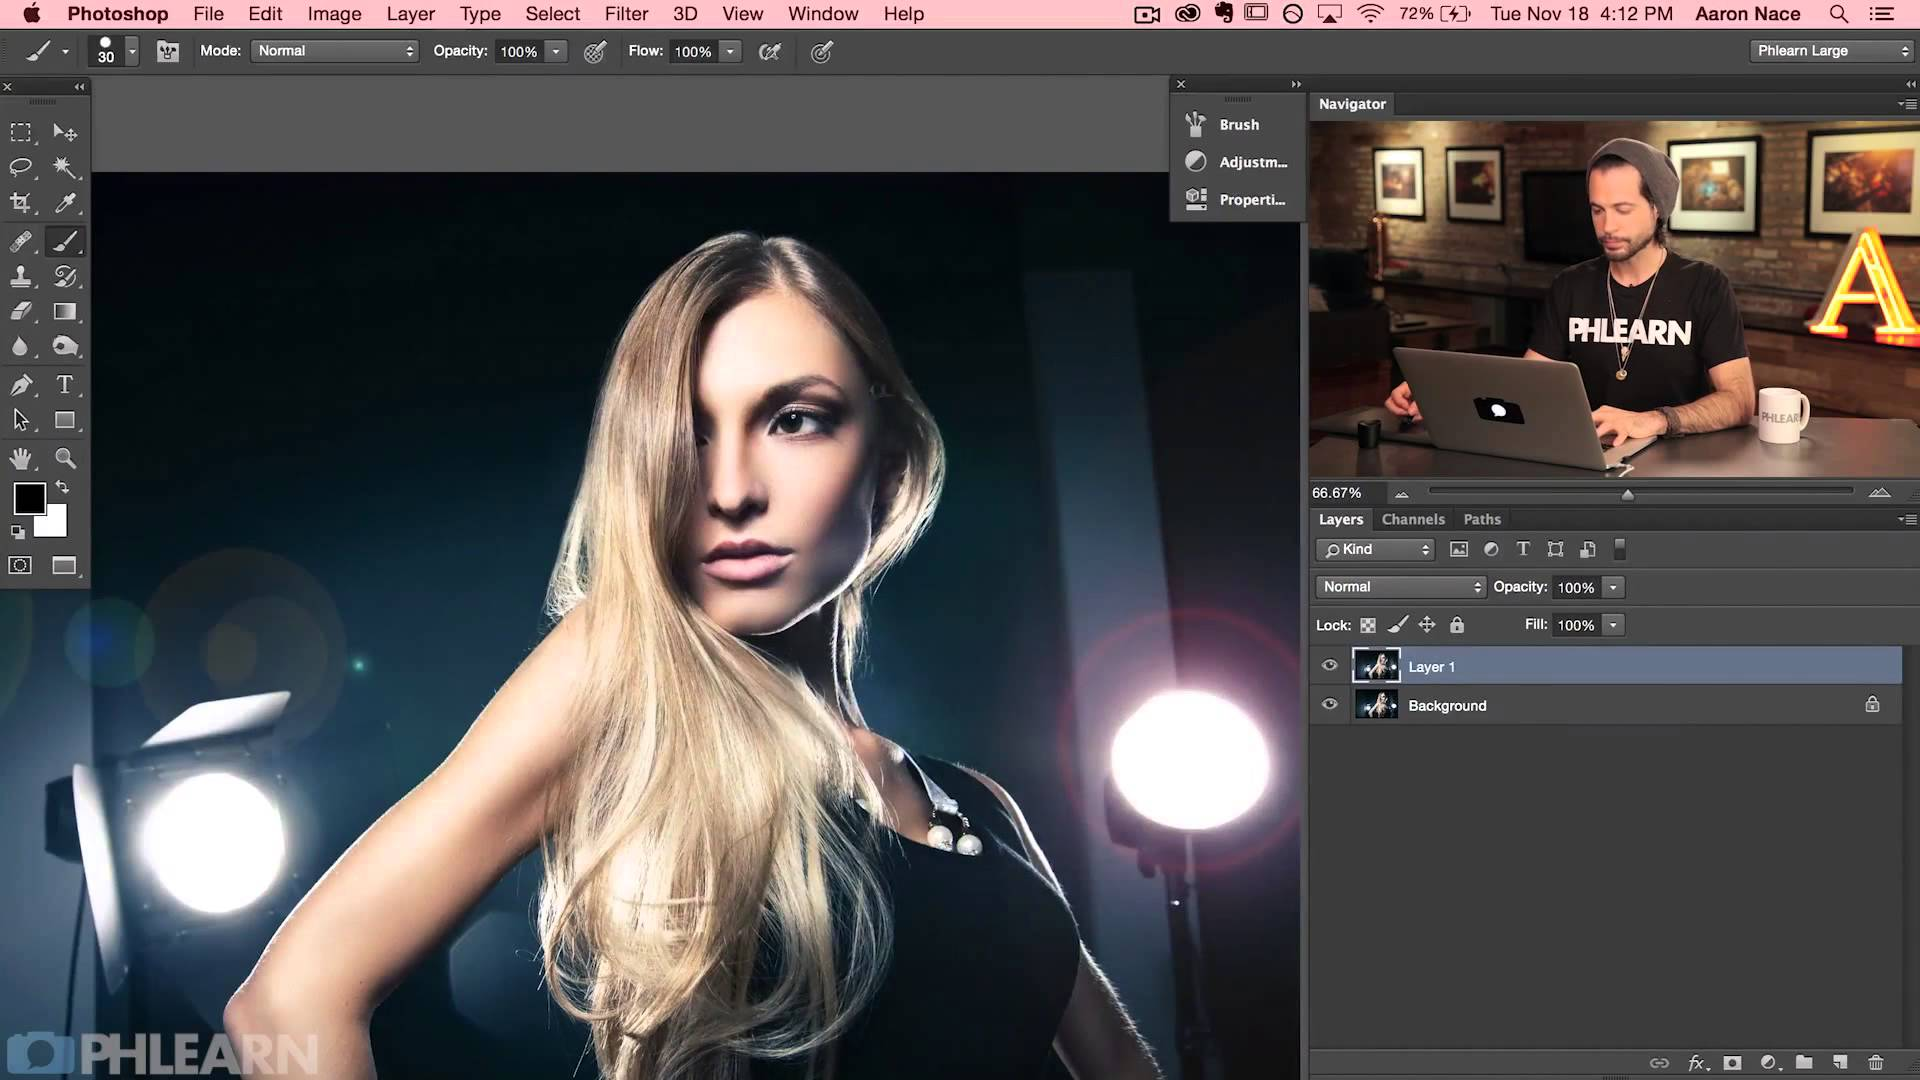 Photoshop File Info - Adding Contact Information To Your ...